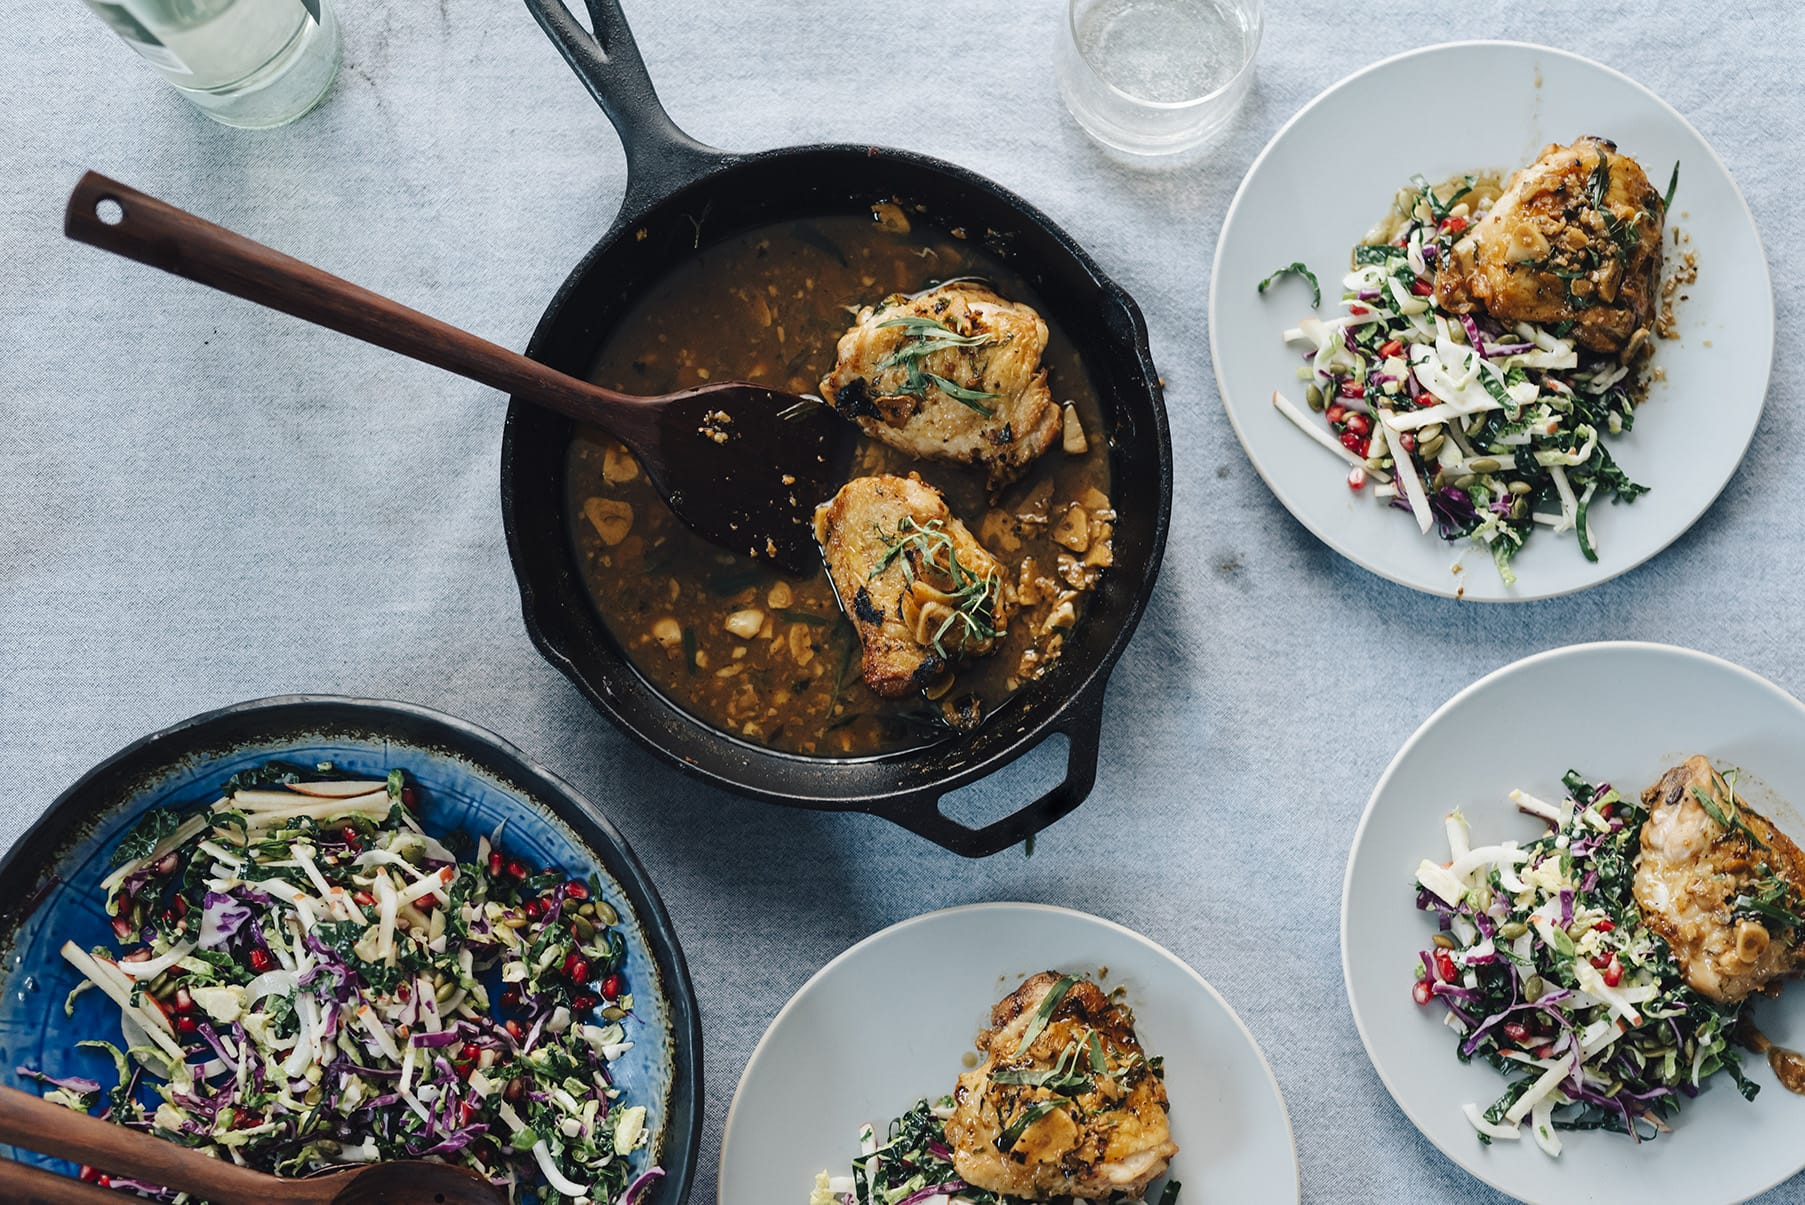 A dinner spread including a bowl of kale pomegranate salad, cast iron skillet chicken, and several dinner plates portioned with chicken and salad.